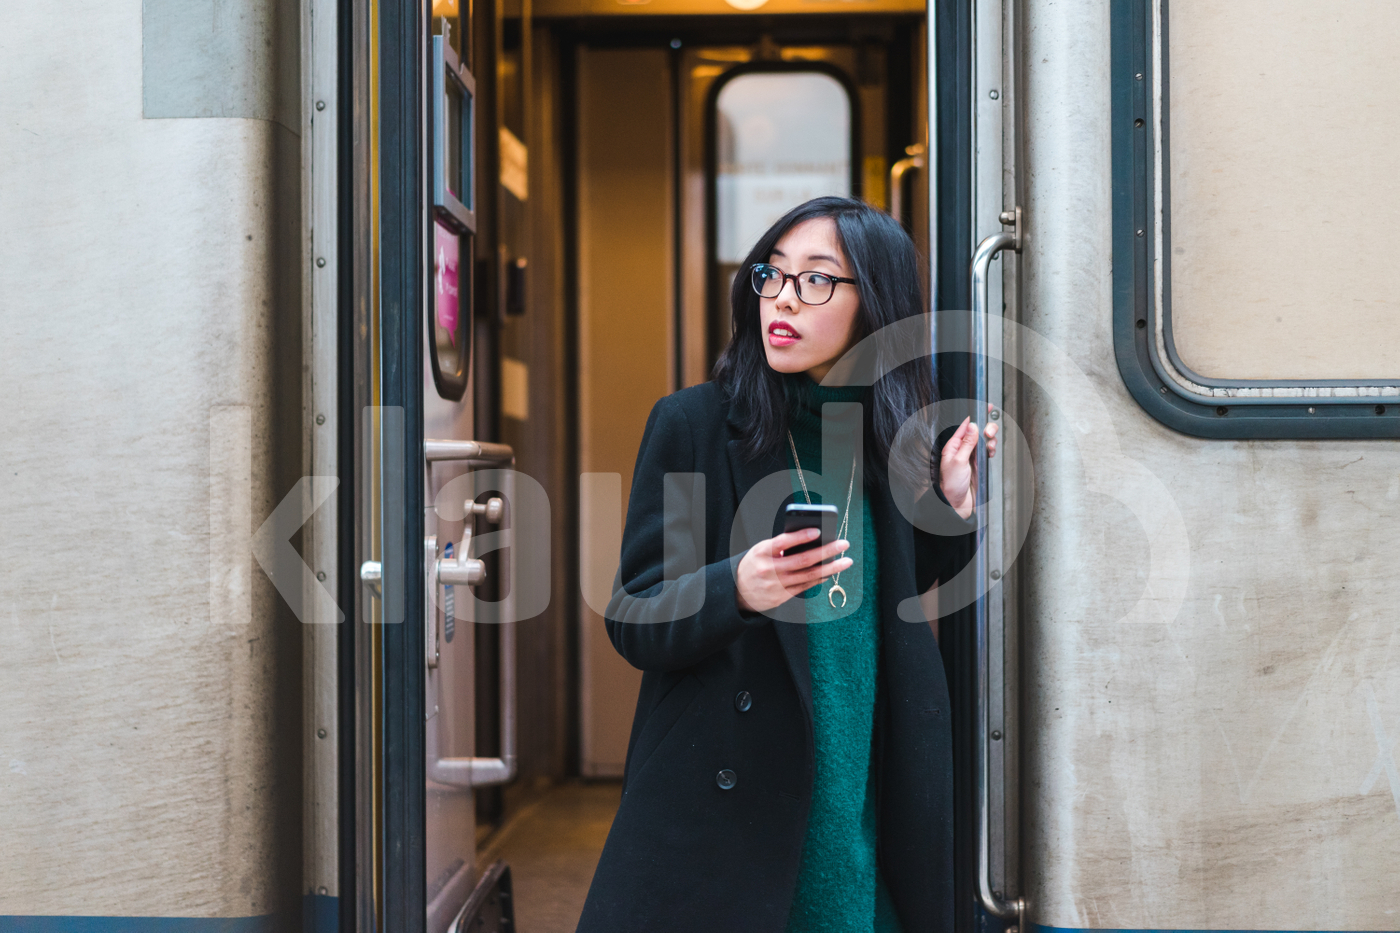 Asian woman stepping off a train holding her mobile